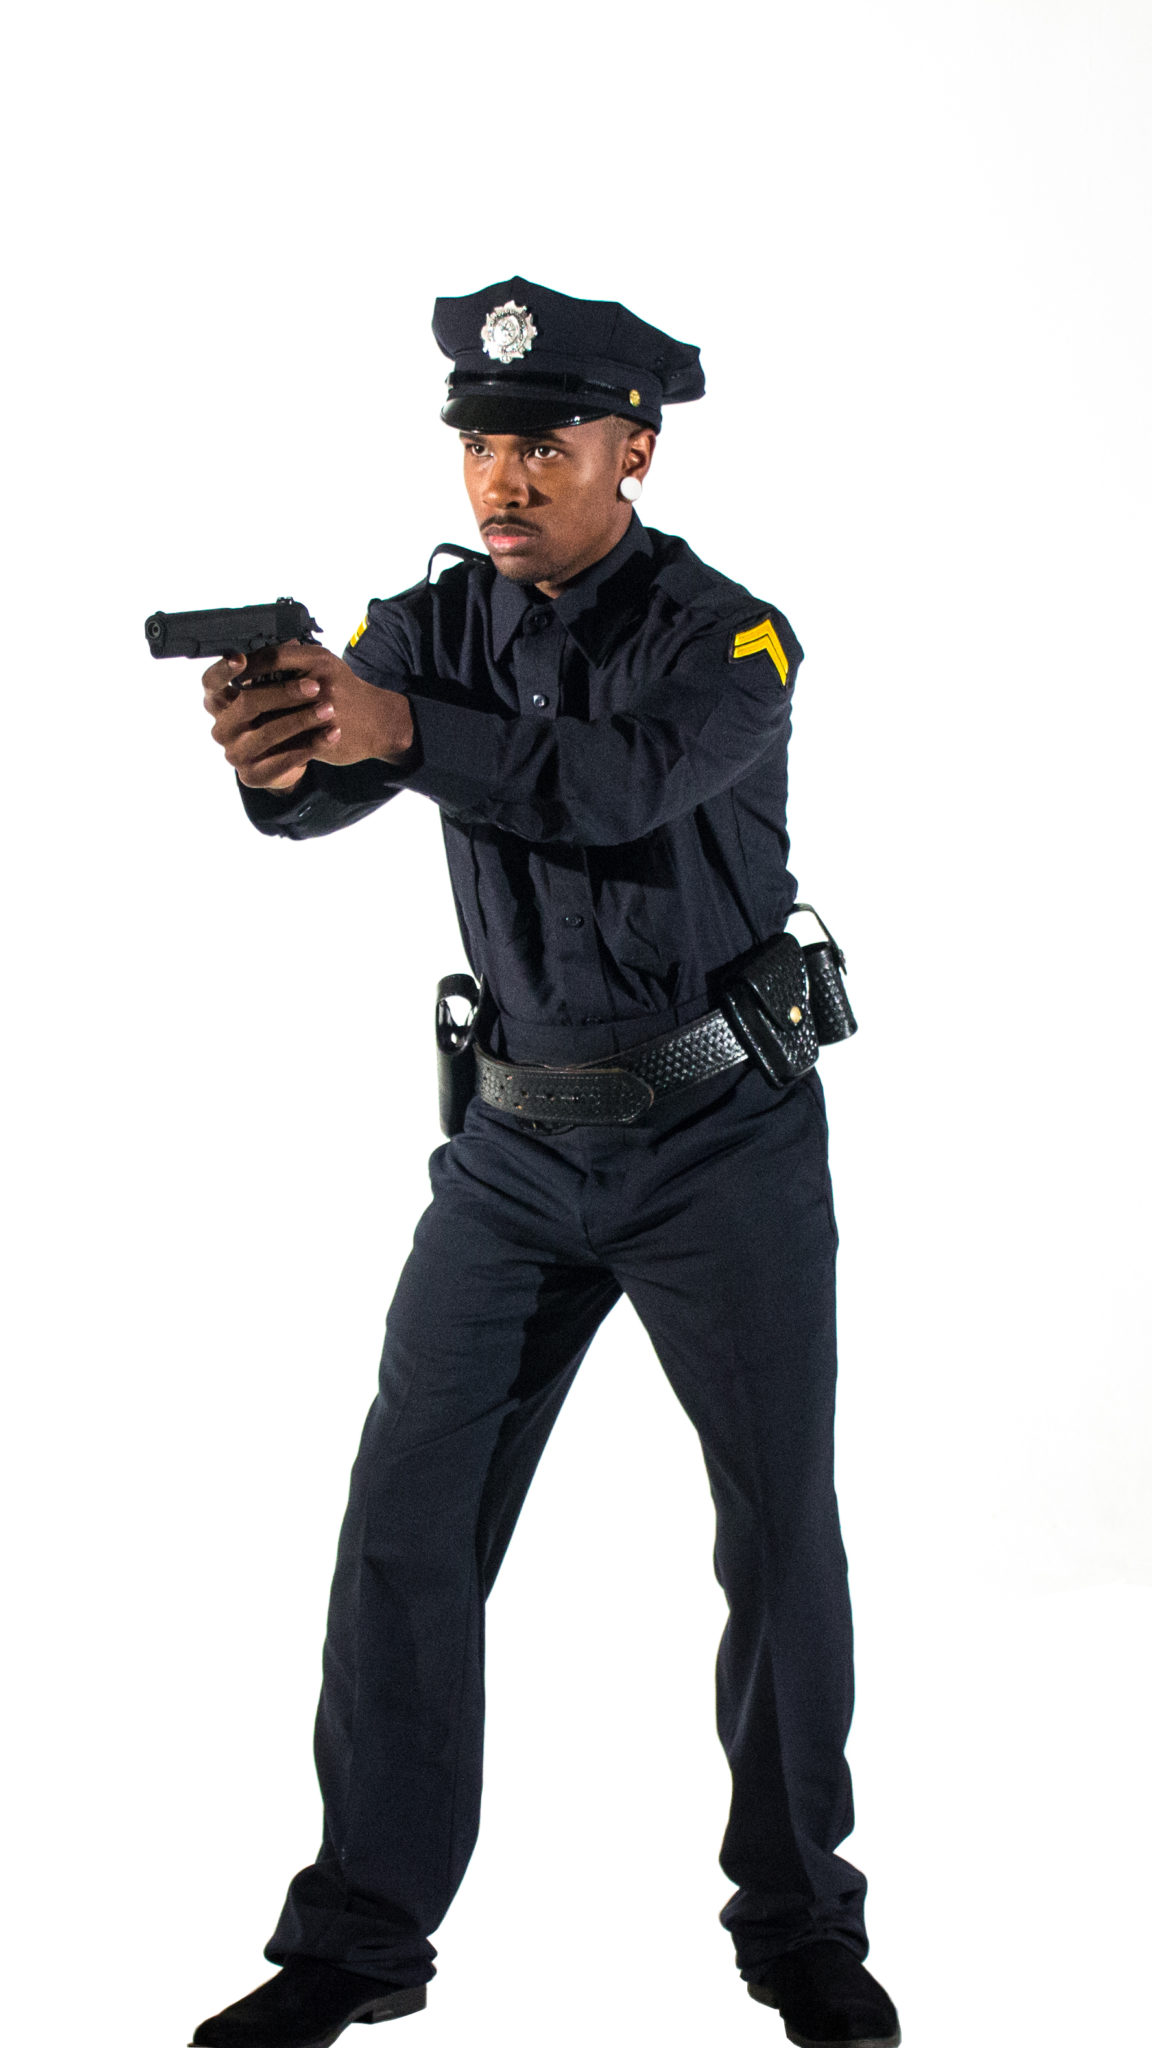 Police Uniform Costume Rentals In Los Angeles